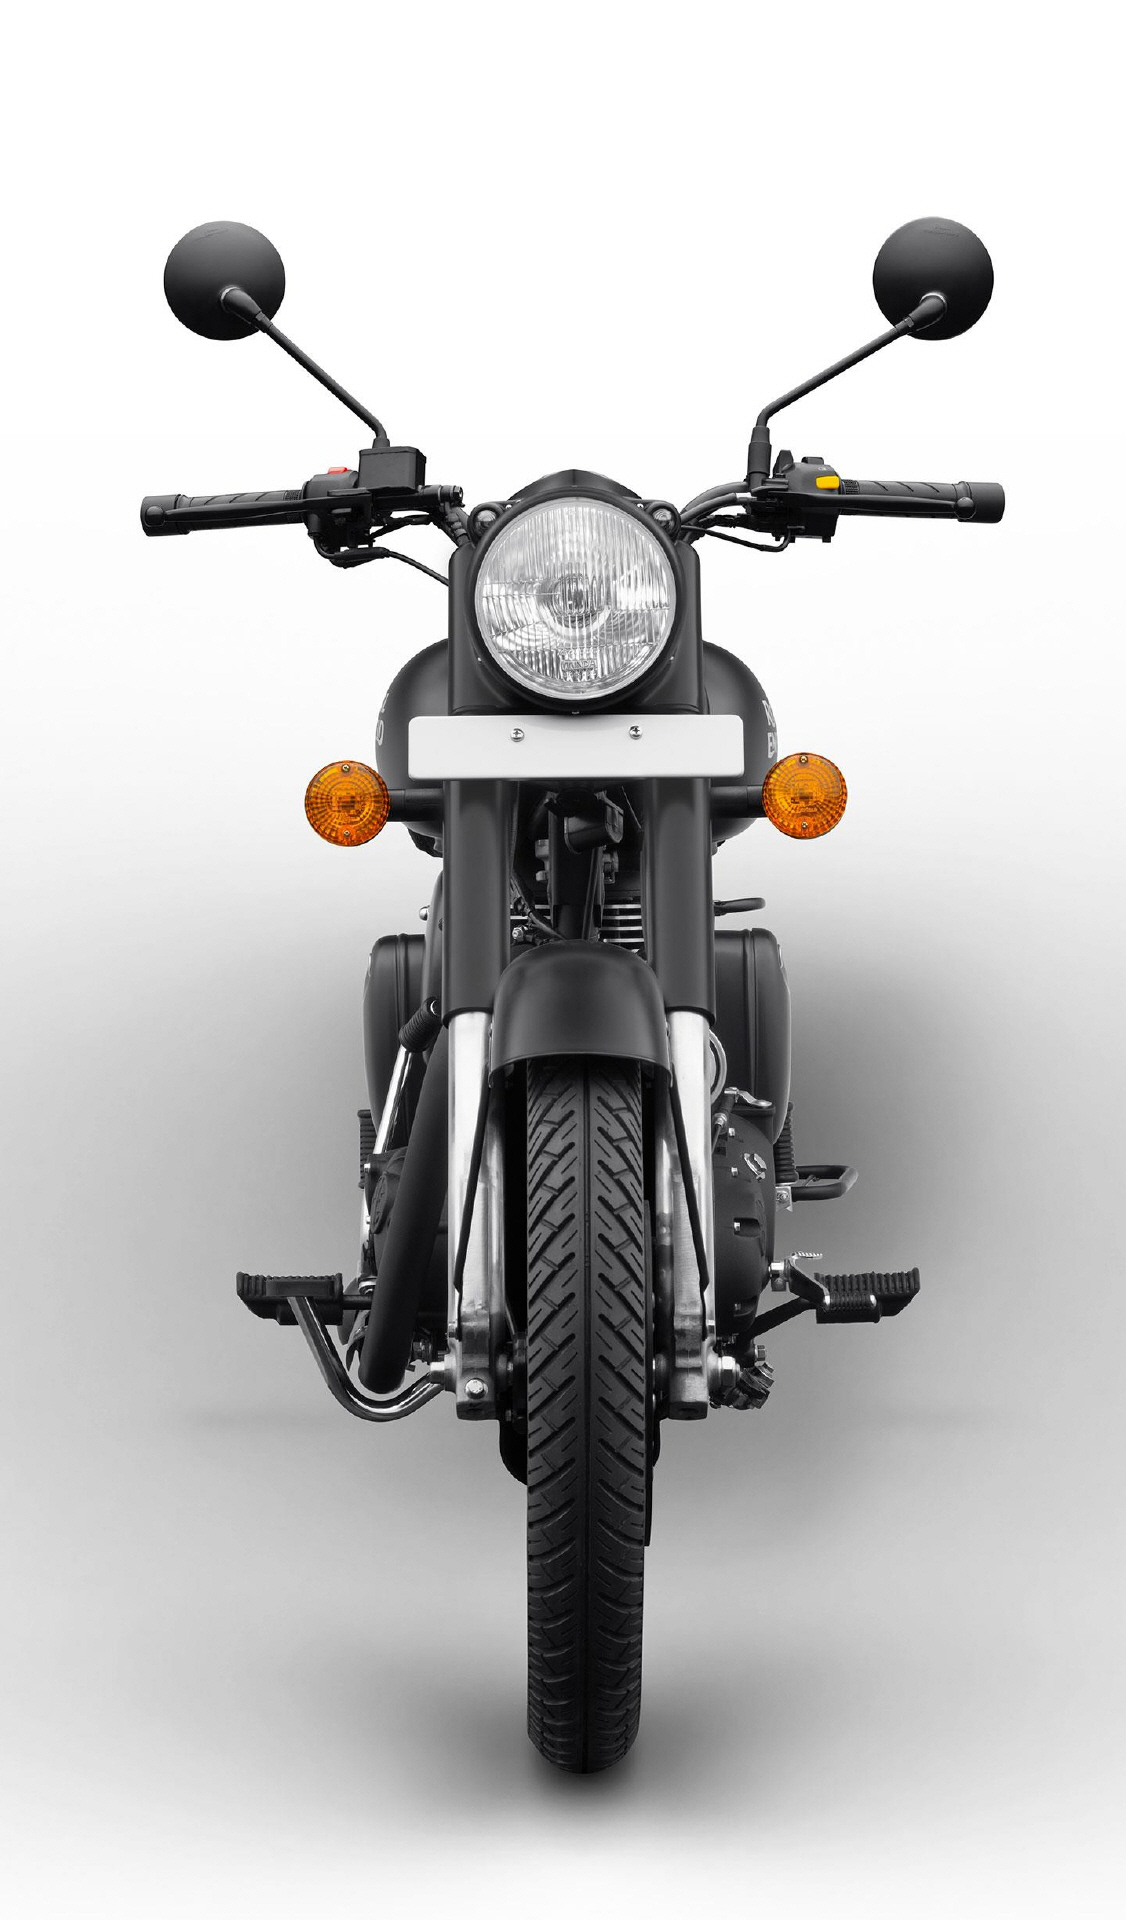 royalenfield_classic500_stealthblack_04jpg